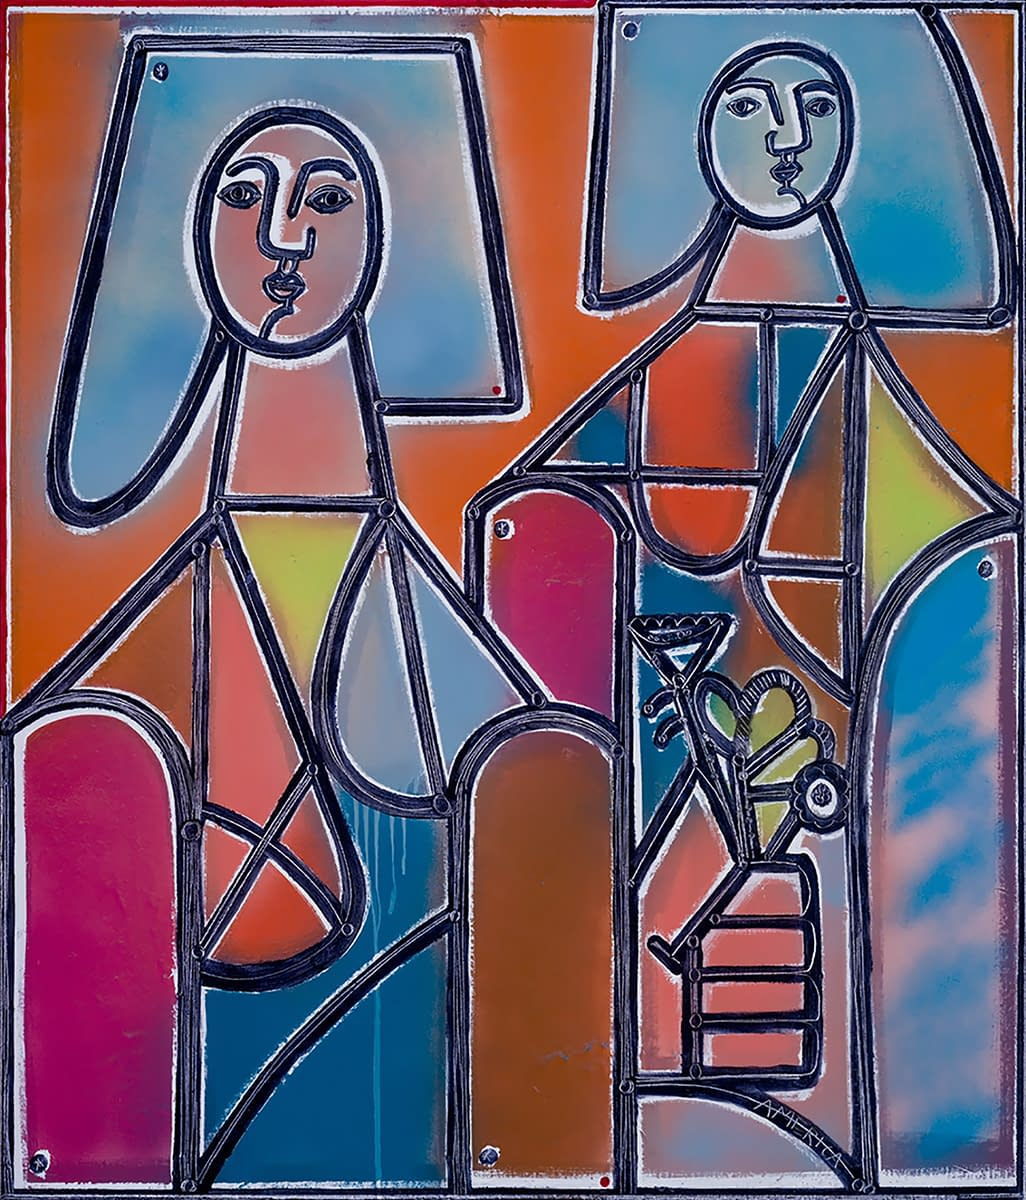 Two_Women_Walk_and_One_Gathers_Flowers_America_Martin_Oil_and_Acrylic_on_Canvas_42x36